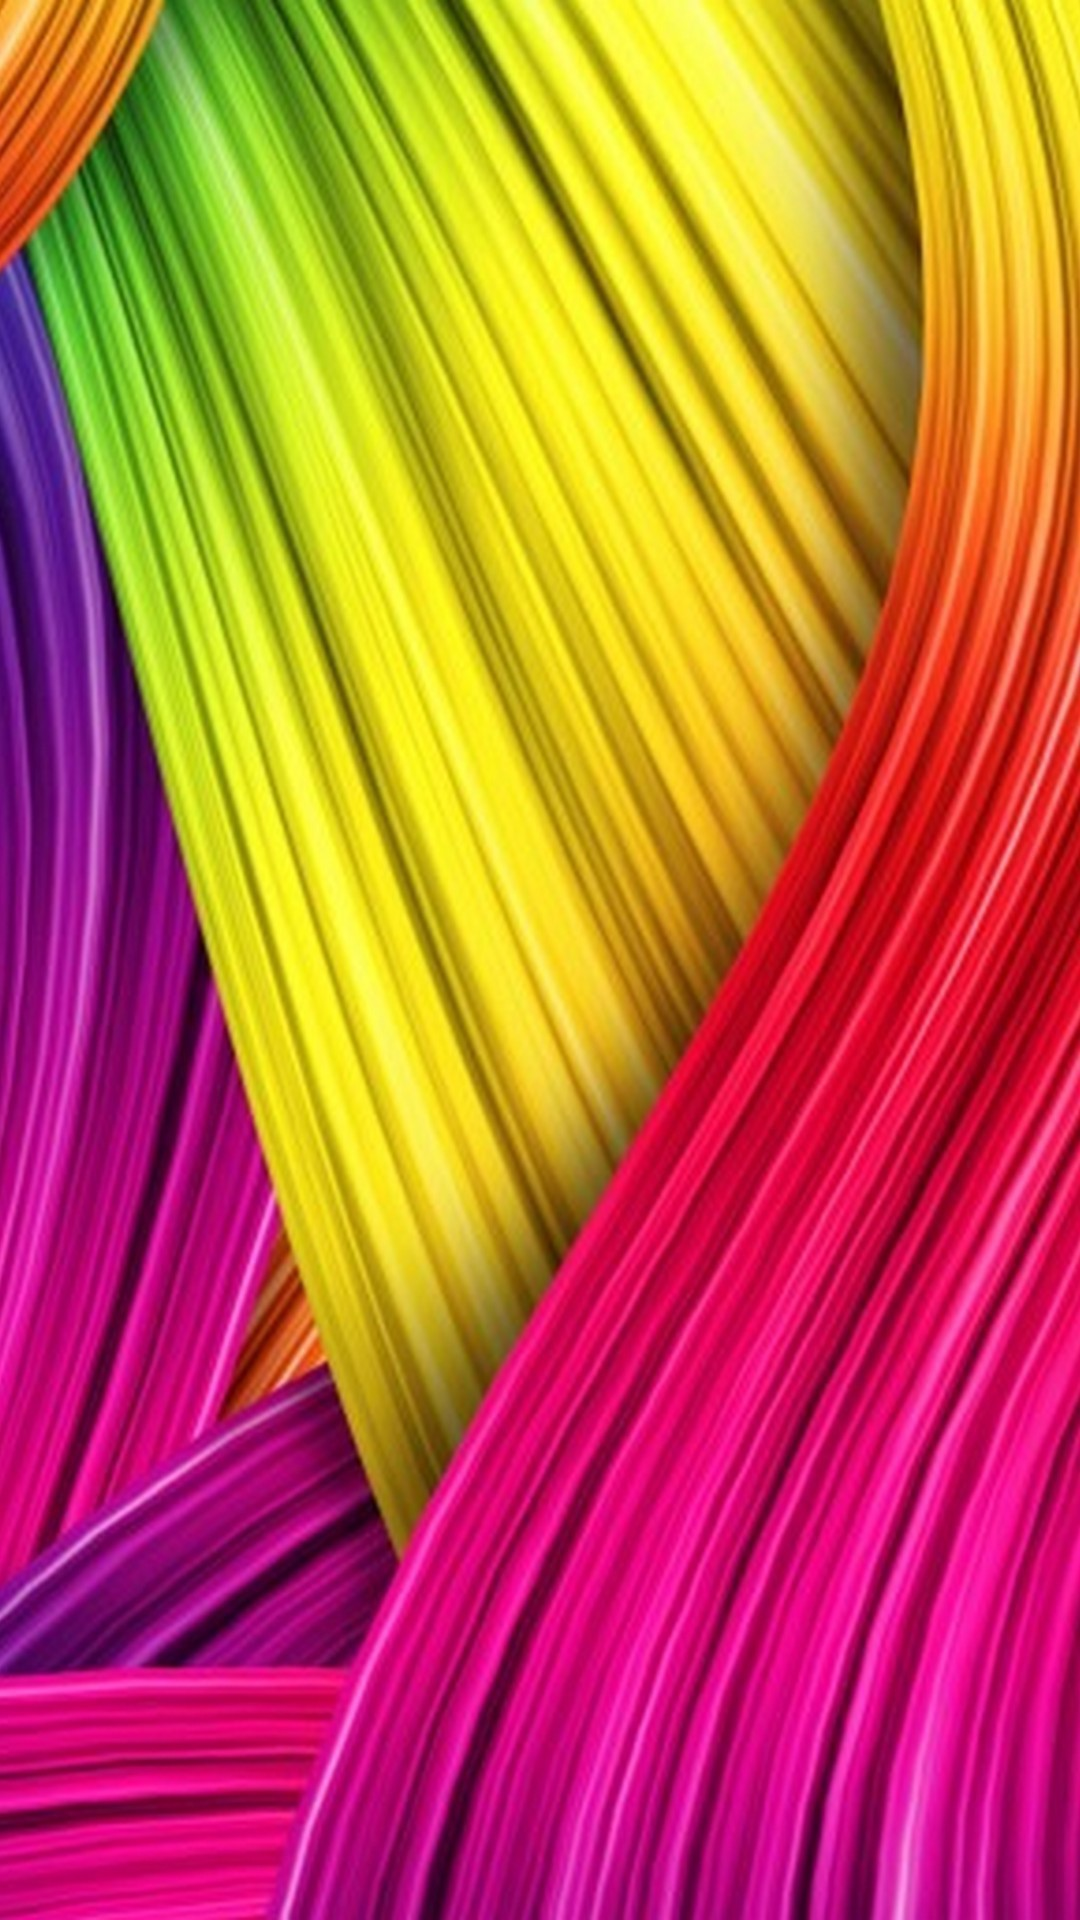 1080x1920 Phones Wallpaper Rainbow Colors with high-resolution  pixel.  Download all Mobile Wallpapers and